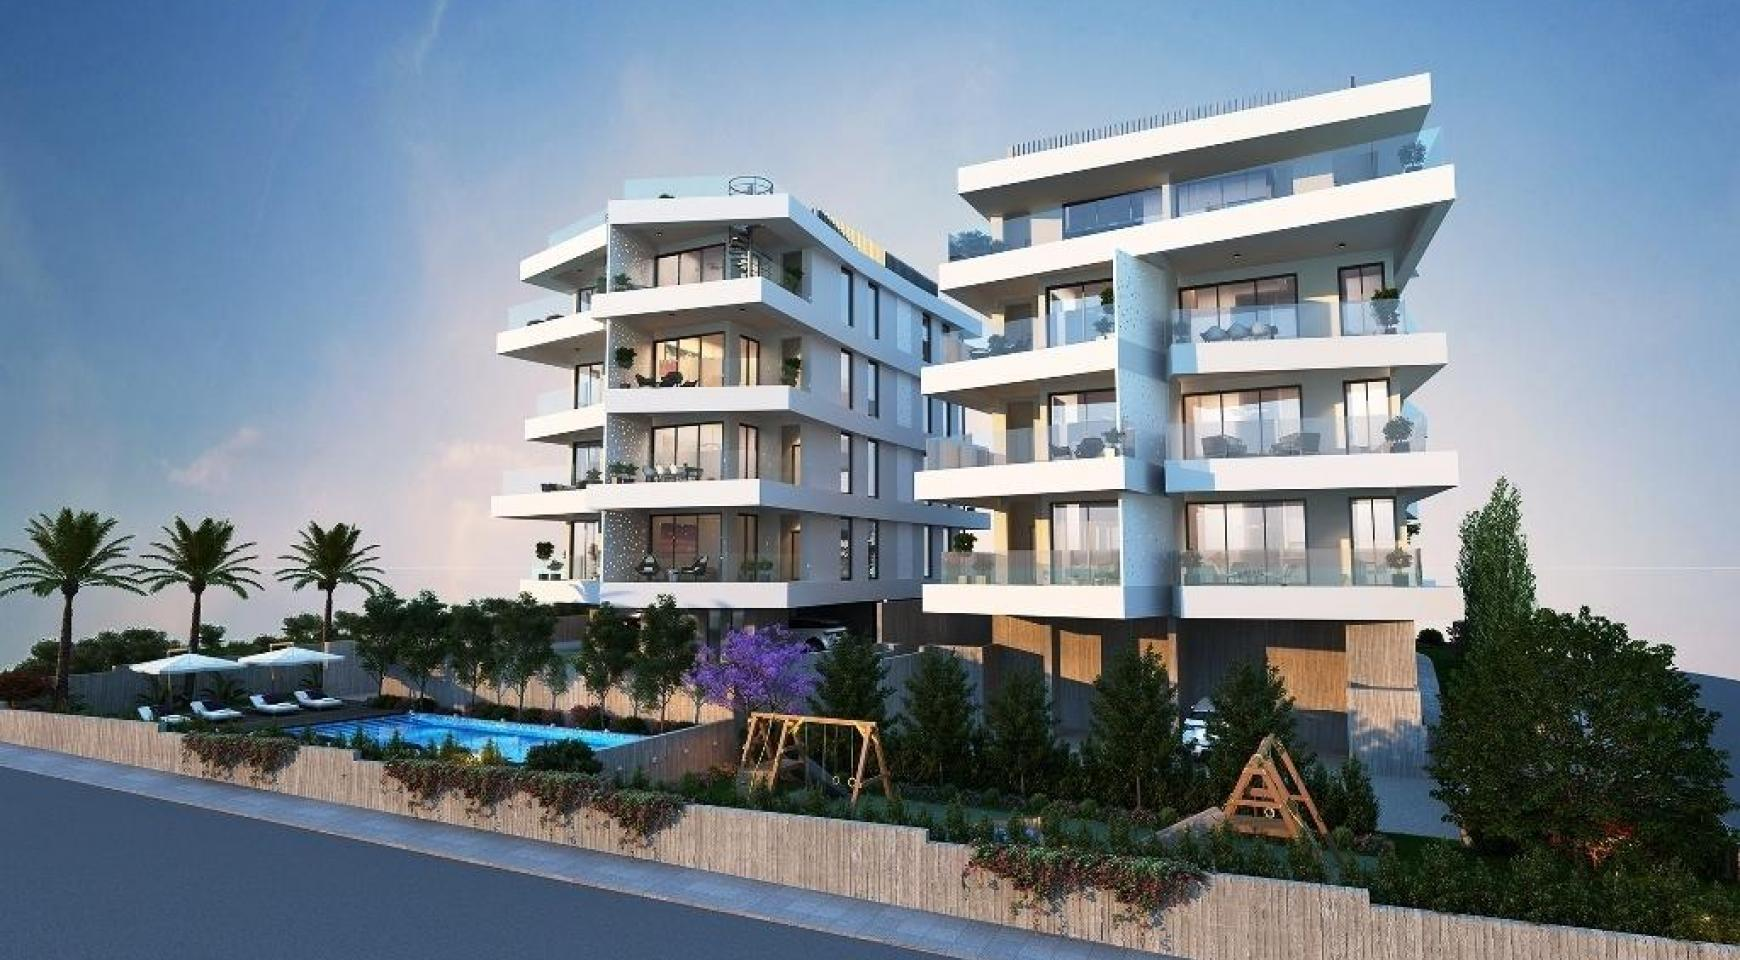 New 3 Bedroom Penthouse in a Contemporary Complex in Germasogeia - 5